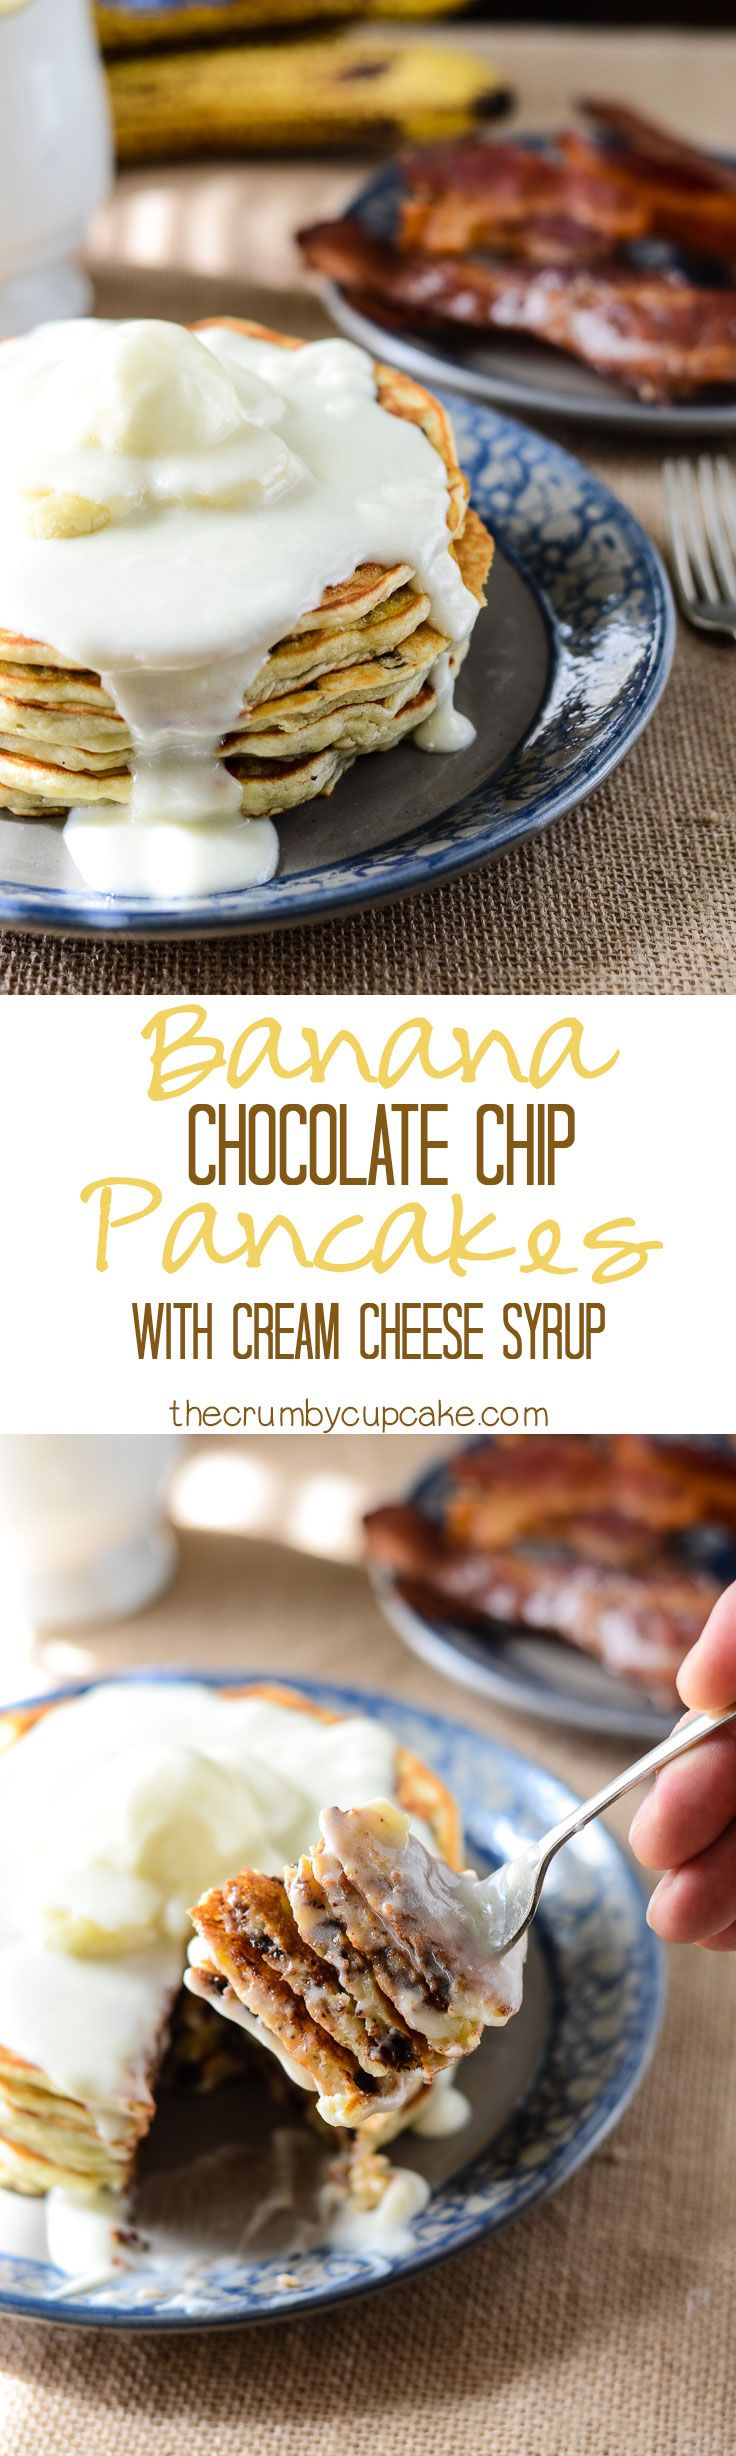 """Banana Chocolate Chip Pancakes   Perfectly light and fluffy banana pancakes, studded with handfuls of chocolate chips, and topped with an ooey-gooey cream cheese """"syrup!"""""""